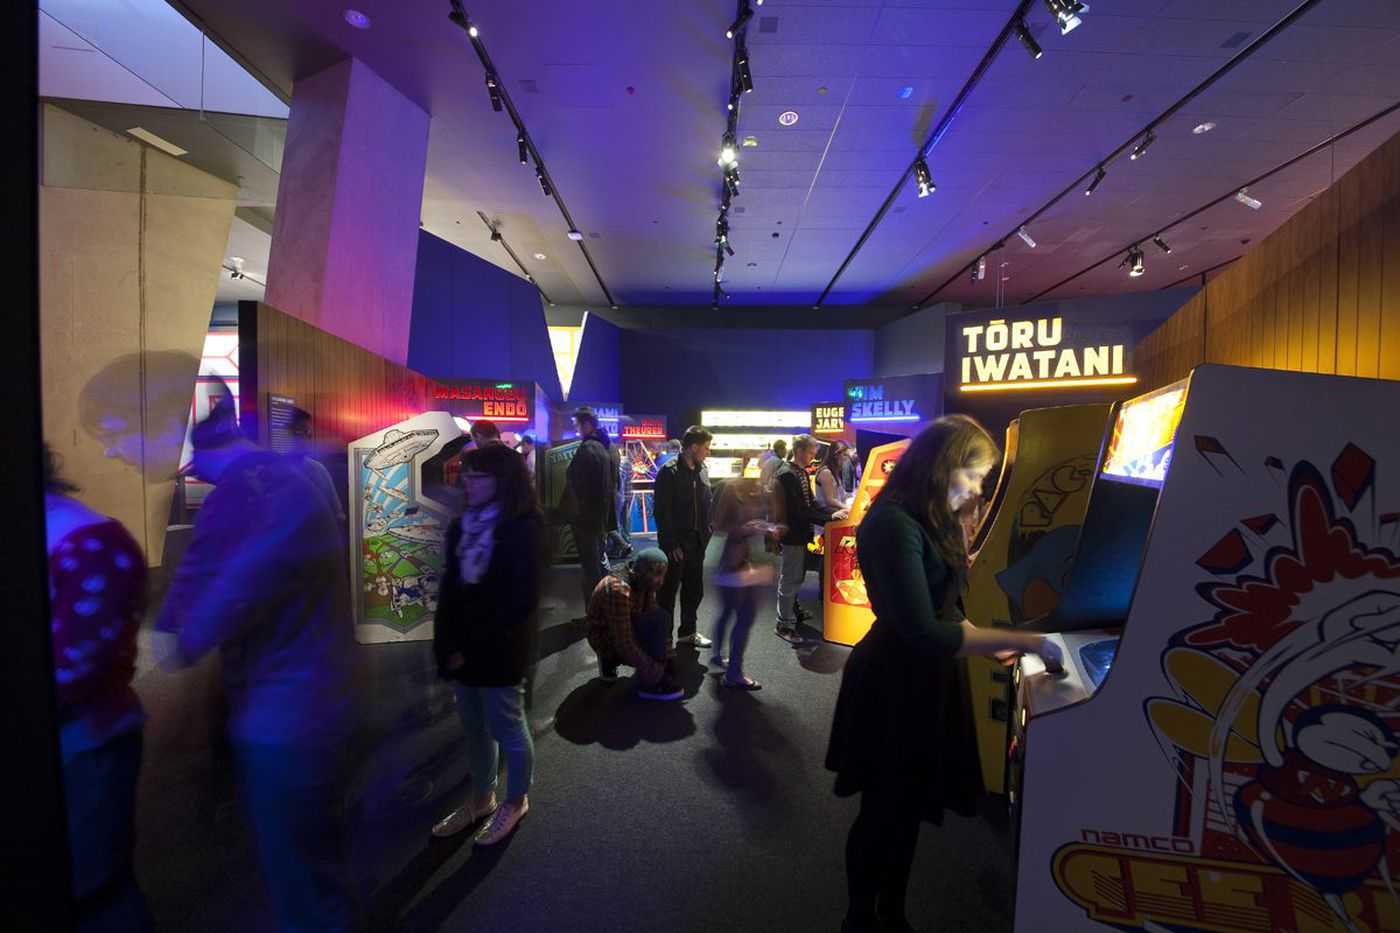 Video game history gets its day with 'Game Masters' exhibit at Franklin Institute